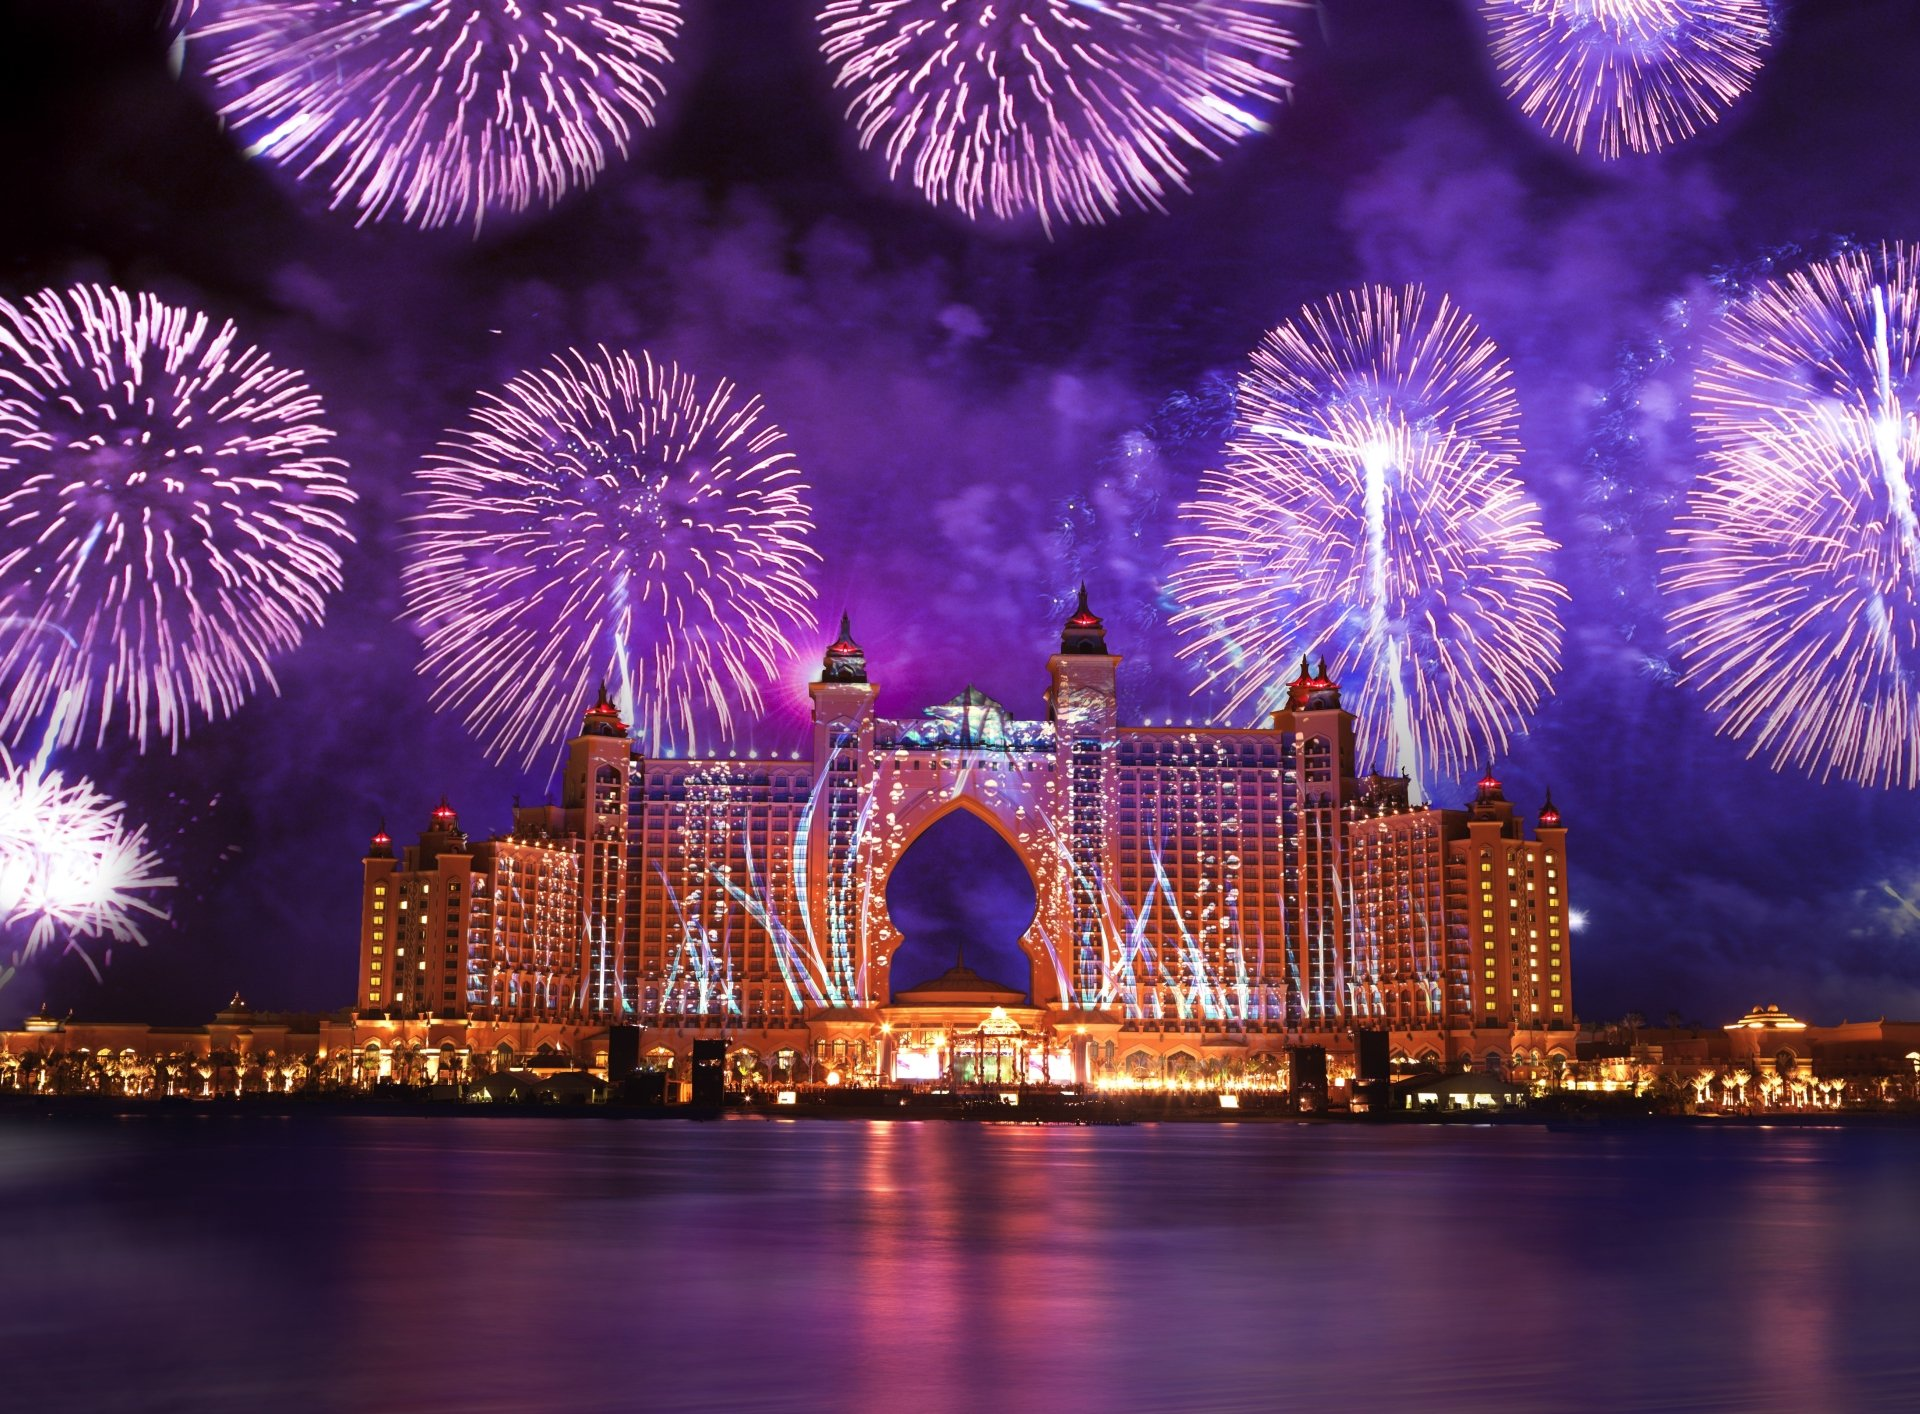 Man Made - Atlantis, The Palm Night Atlantis Hotel Dubai Light Colors Celebration Sea Hotel Fireworks Wallpaper